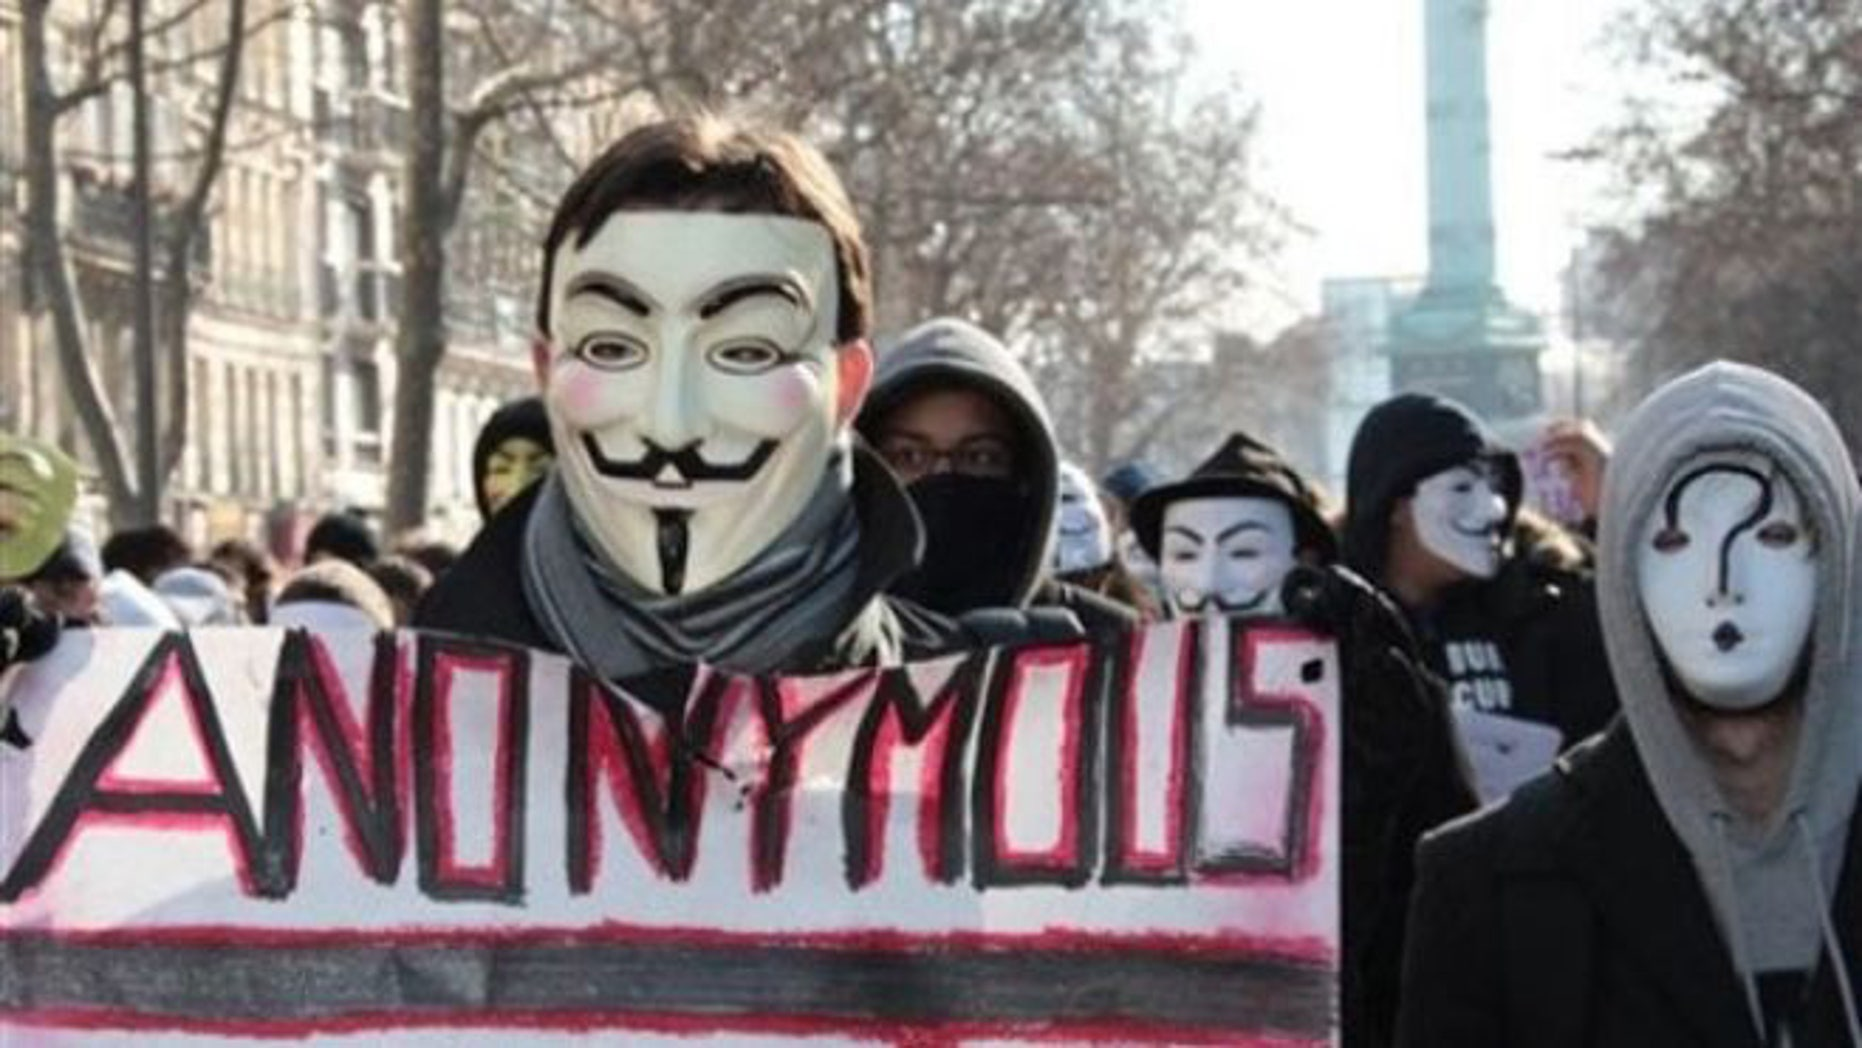 Anonymous leaks the credentials of 4,000 bank executives during the Super Bowl.